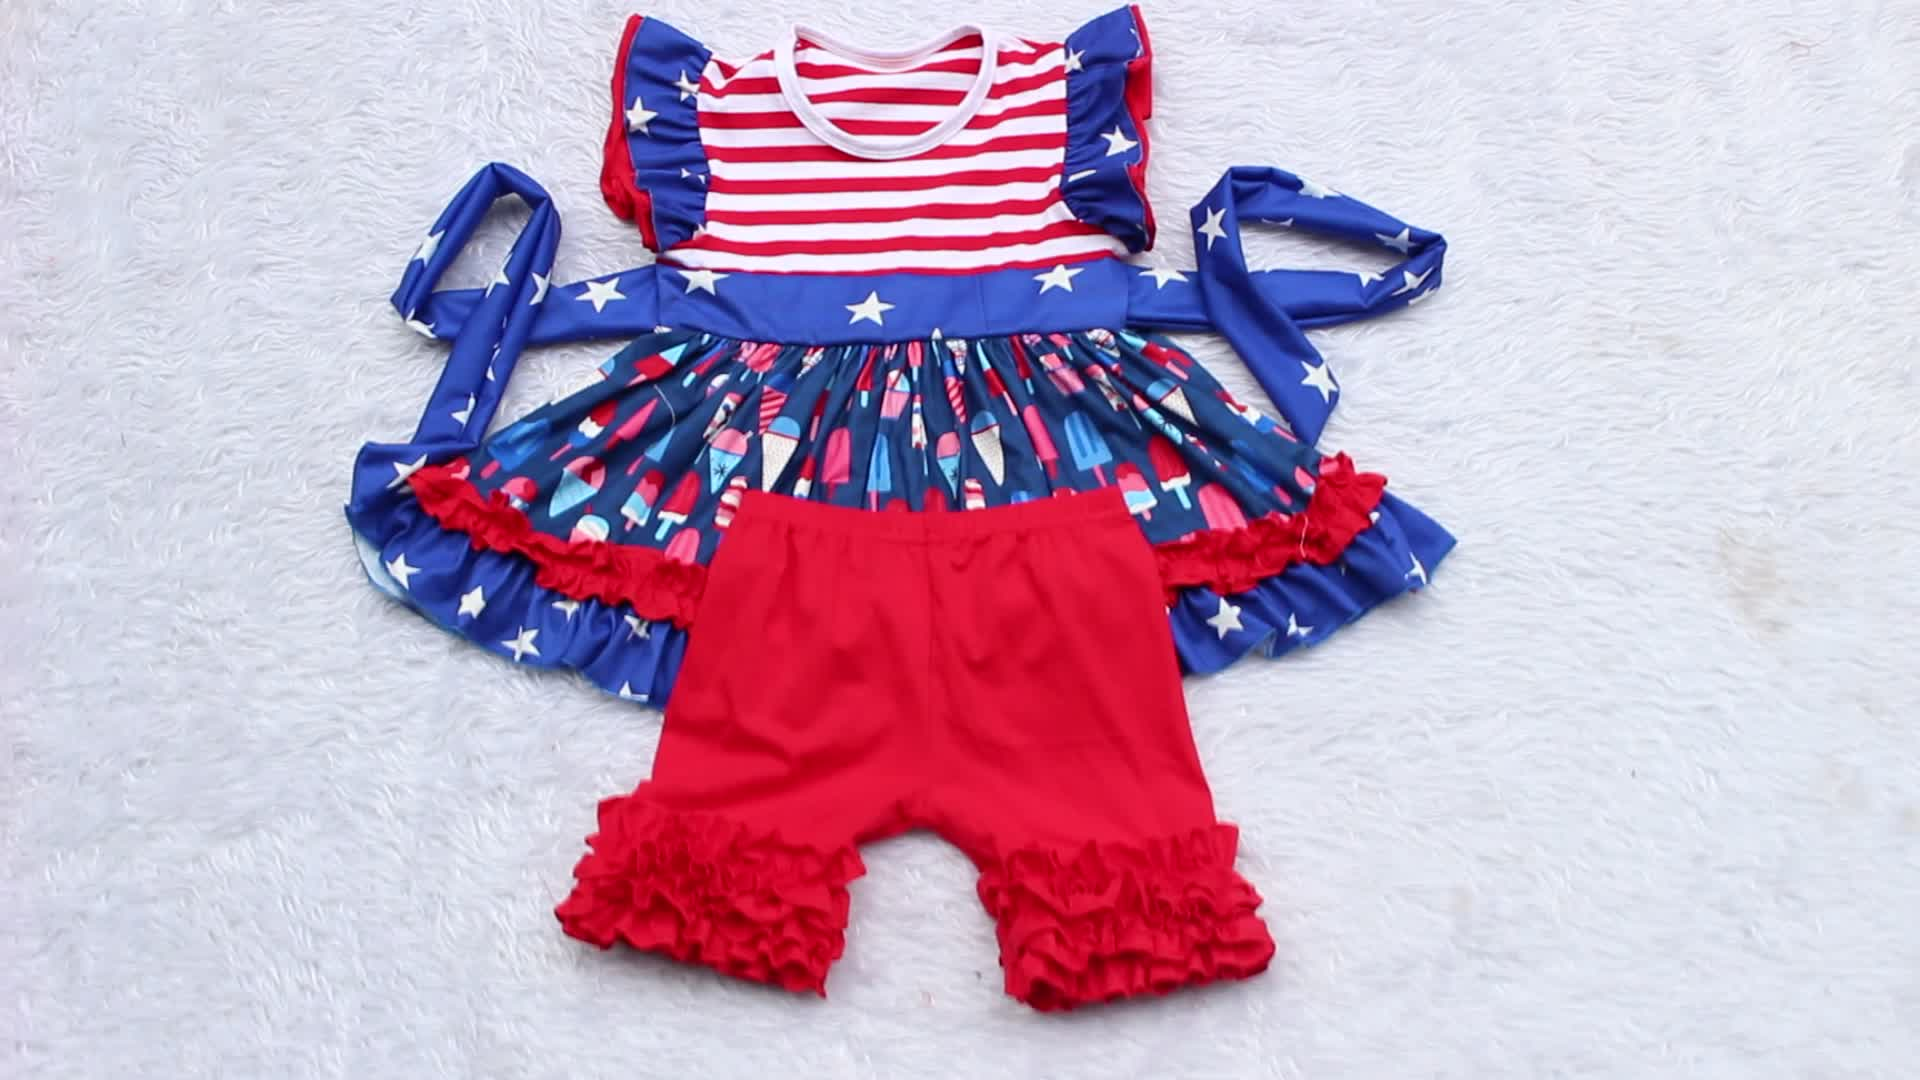 Cheap Wholesale Boutique Kids Clothing Infant Toddler Clothes Baby Cotton Sleeveless 2pcs Rompers +Headband